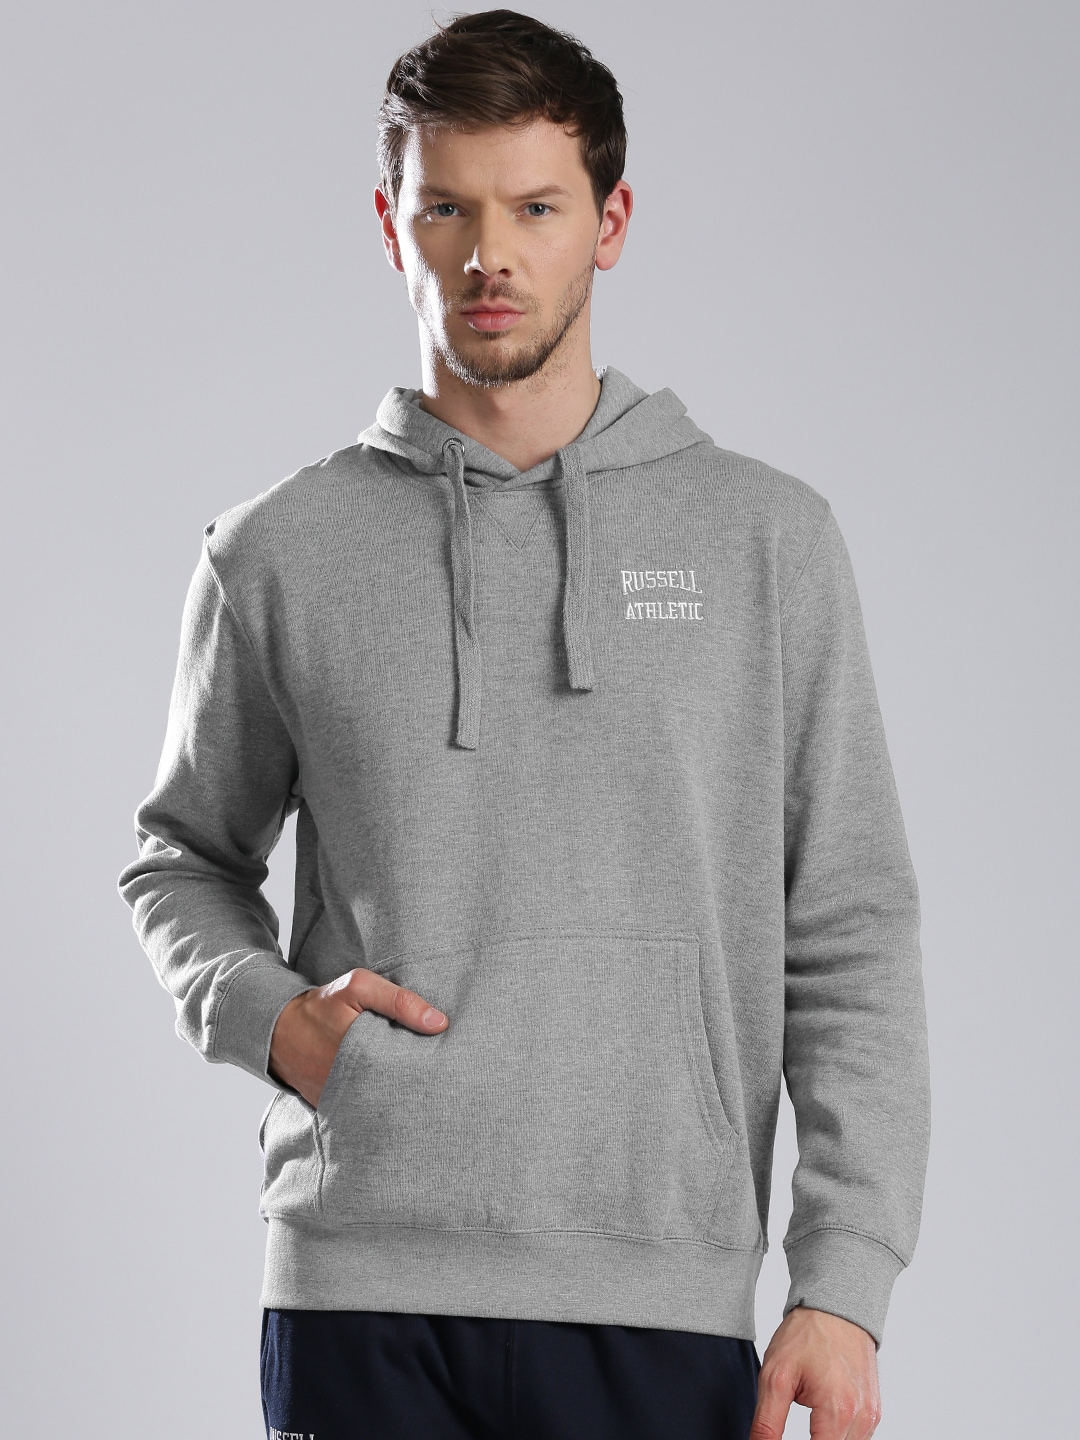 Russell Athletic Grey Melange Solid Hooded Sweatshirt image